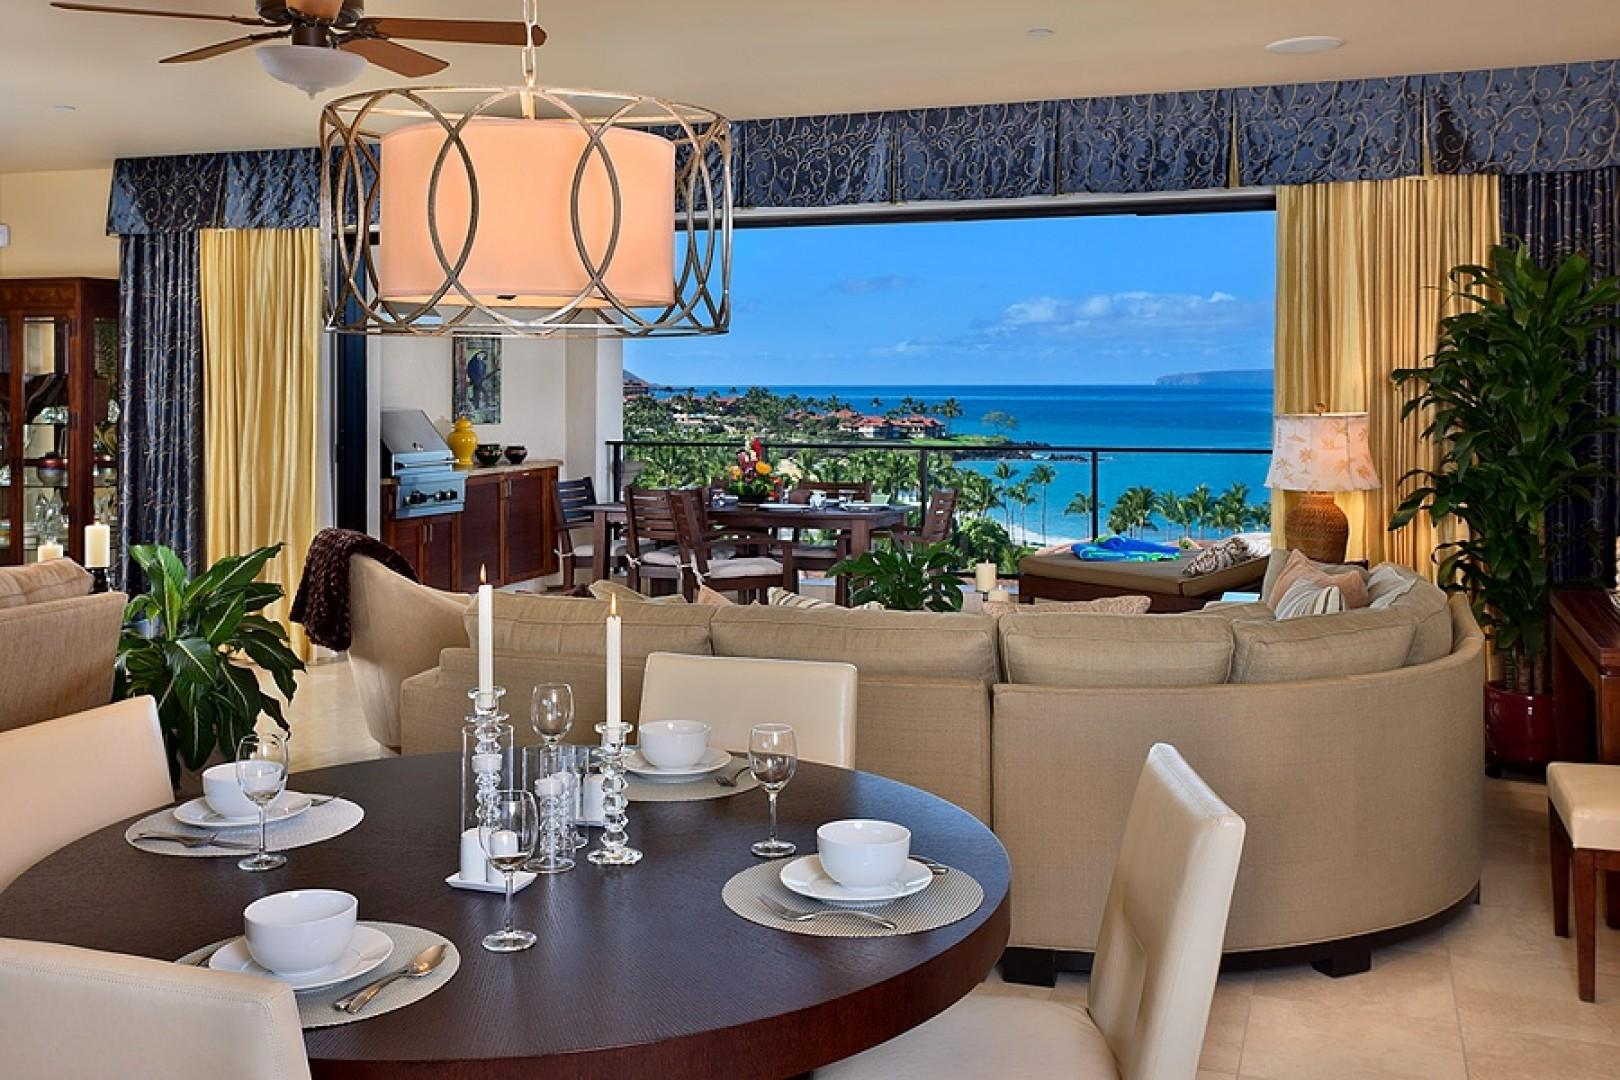 Sandy Surf K508 - Intimate Indoor Ocean View Dining - Chairs for up to 6 Guests Are Provided To Go Around the Table